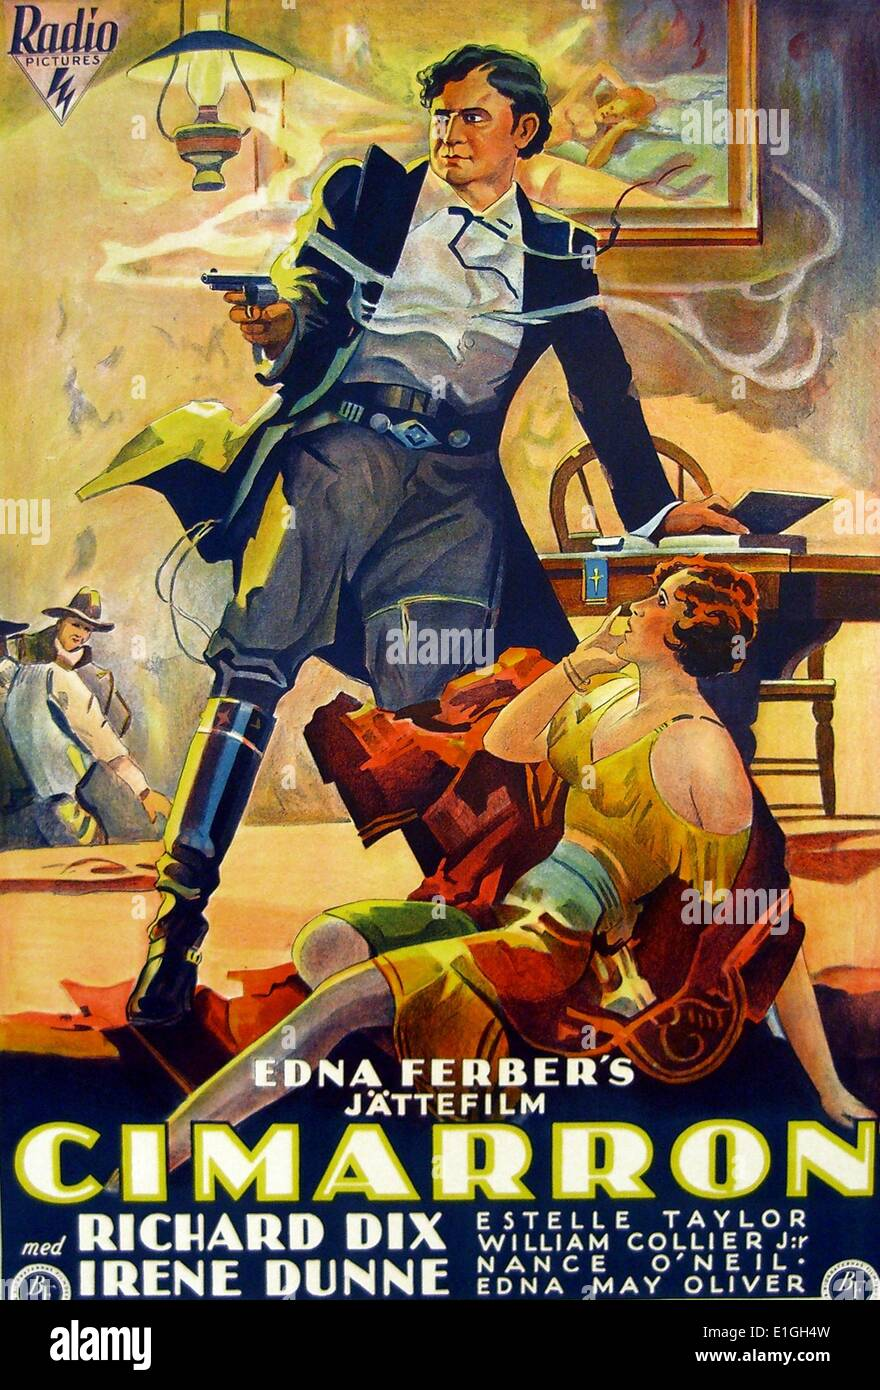 'Cimarrond', a 1960 western featuring Glenn Ford and Maria Schell. - Stock Image